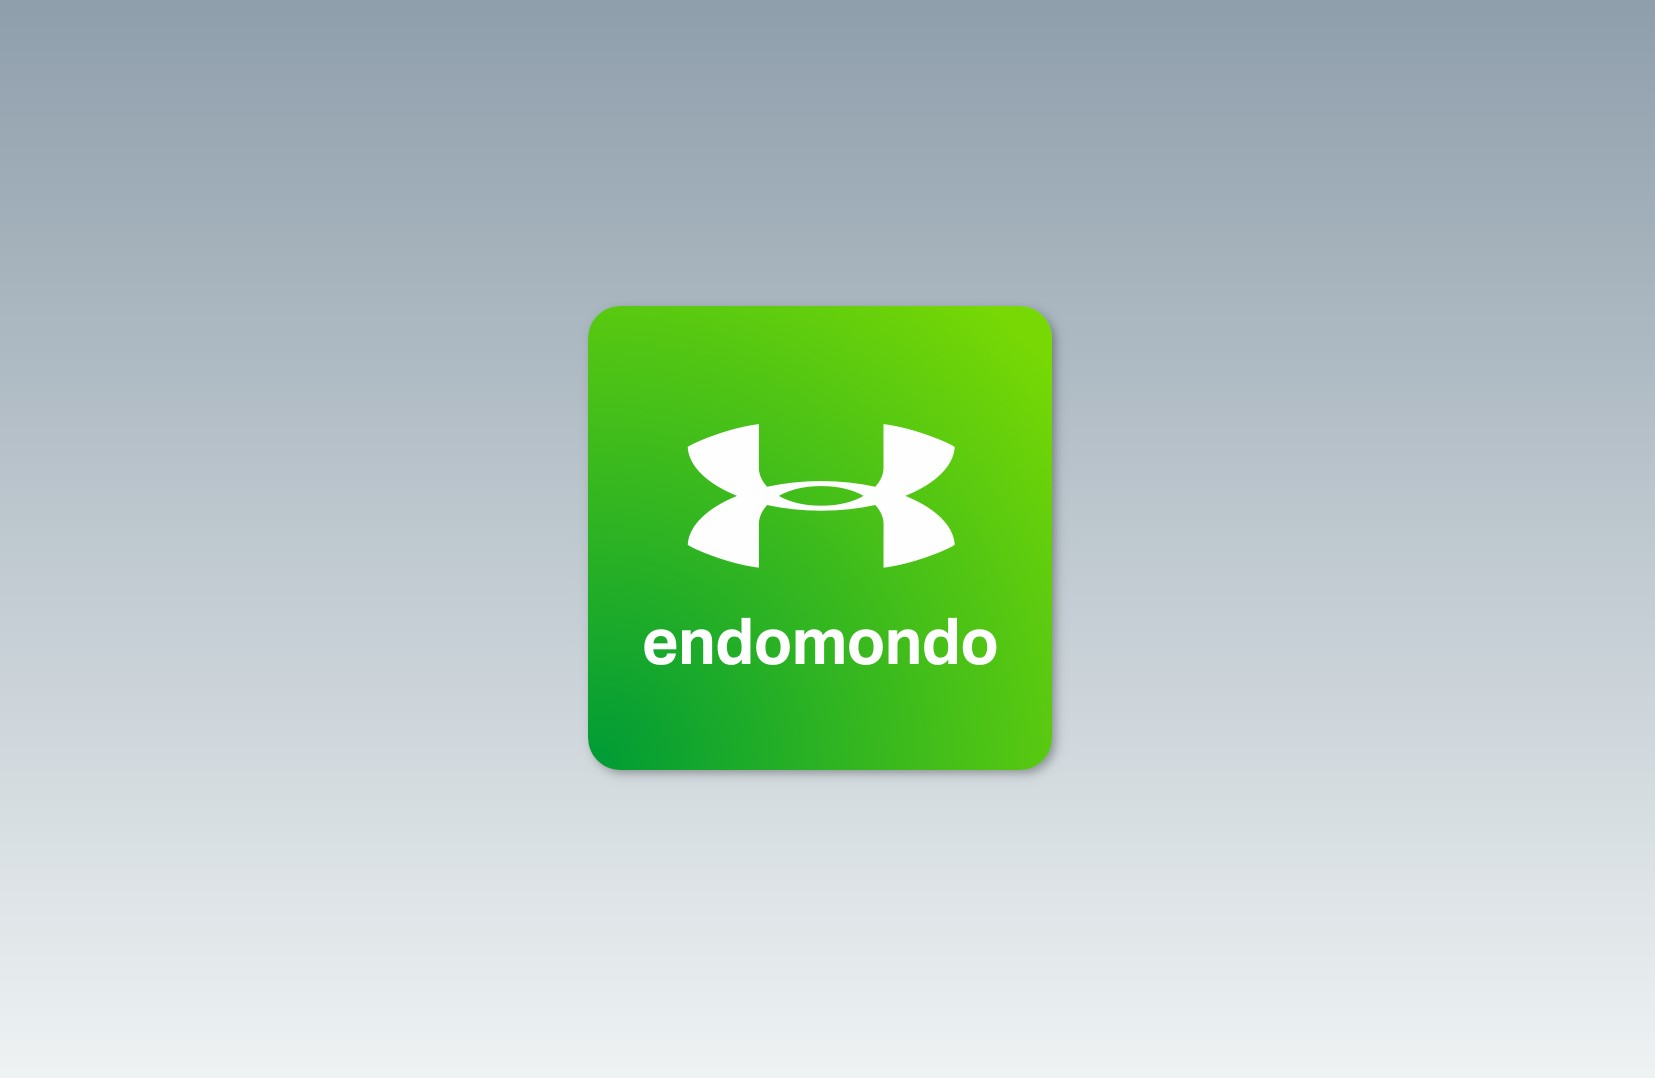 endomondo tit